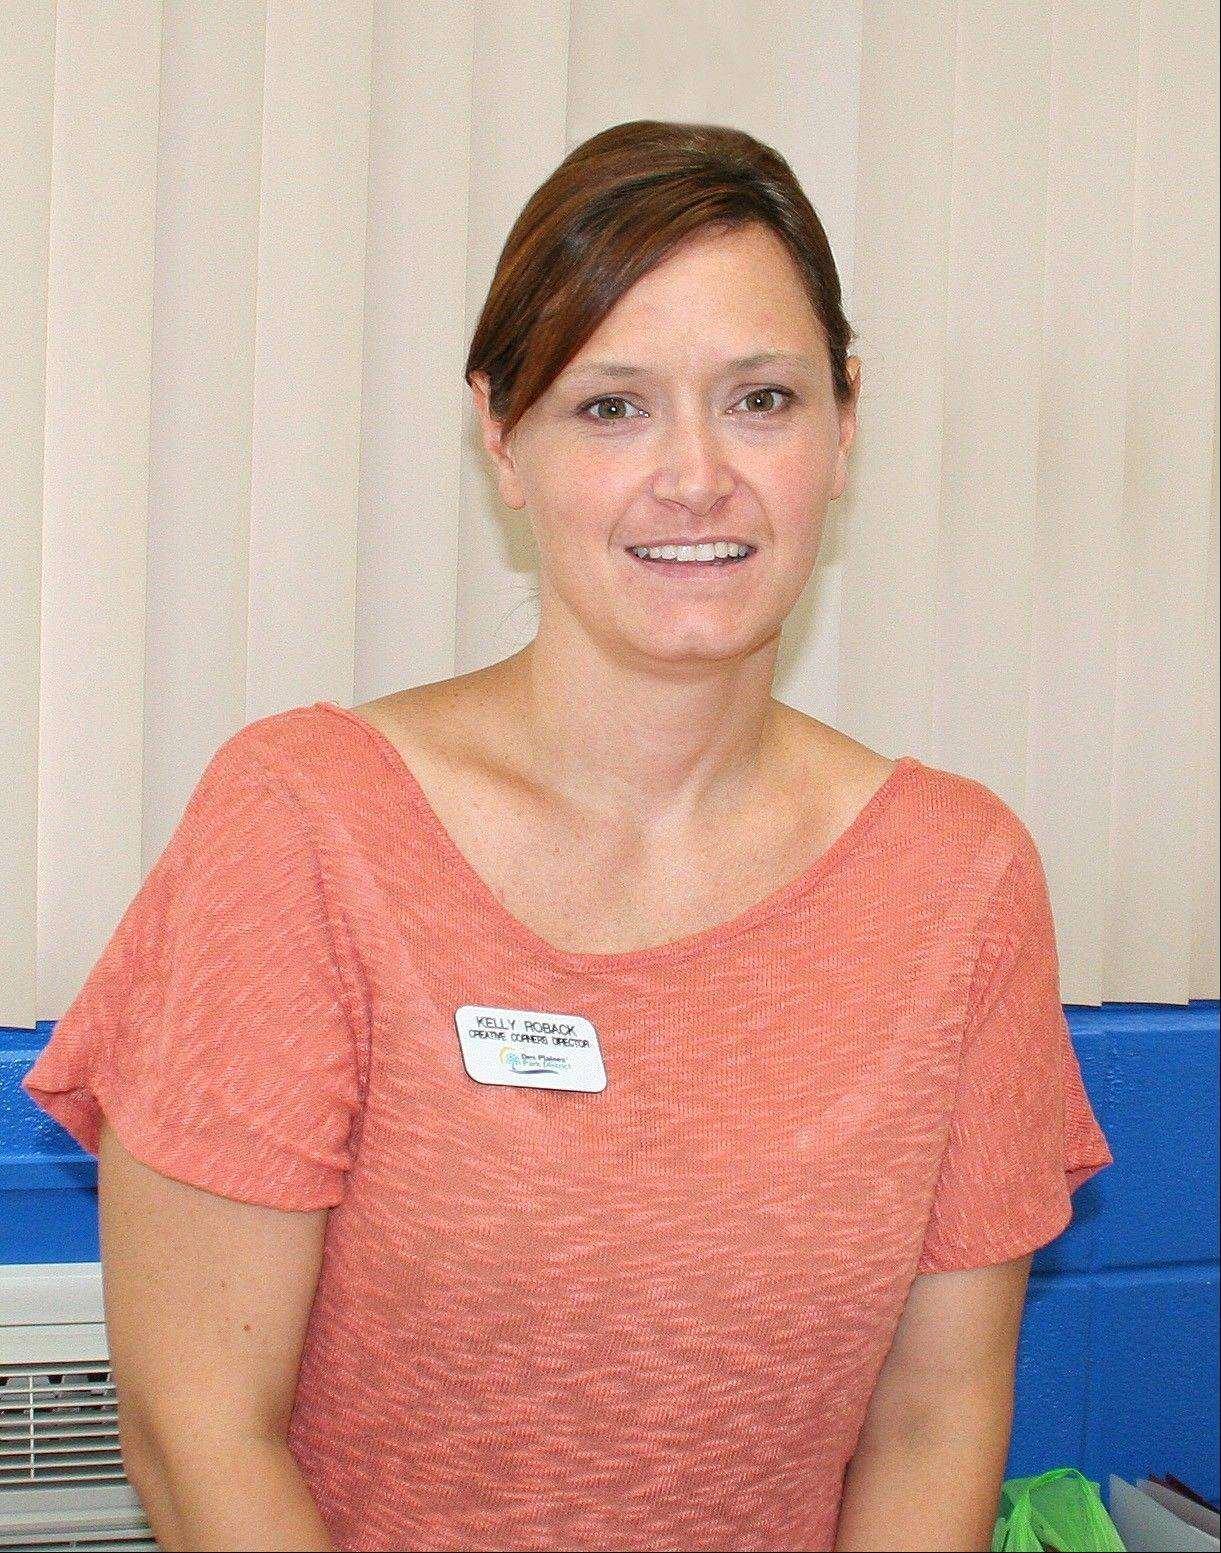 Kelly Roback of Des Plaines, was appointed director of the Creative Corners Terrific 3's Preschool.